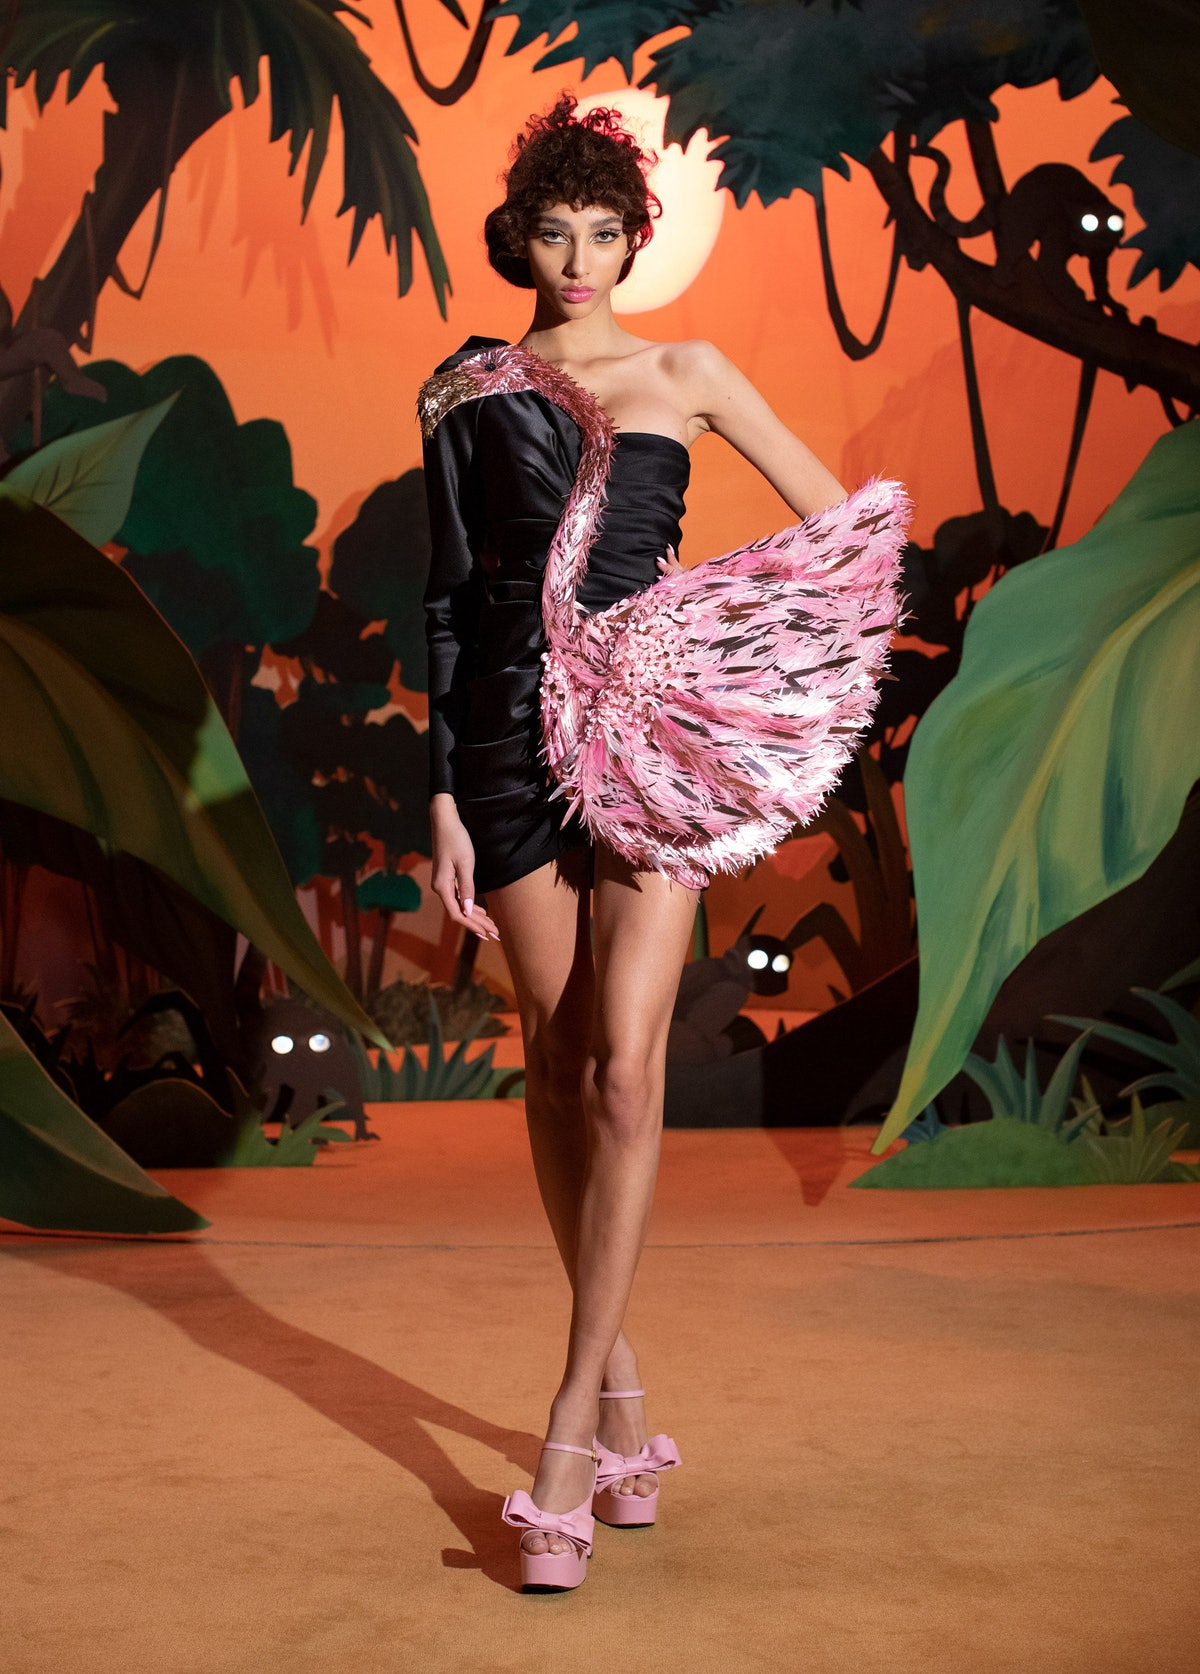 A model in the Moschino fall 2021 shoe wearing a flamingo dress with Y2K, bow-top heels